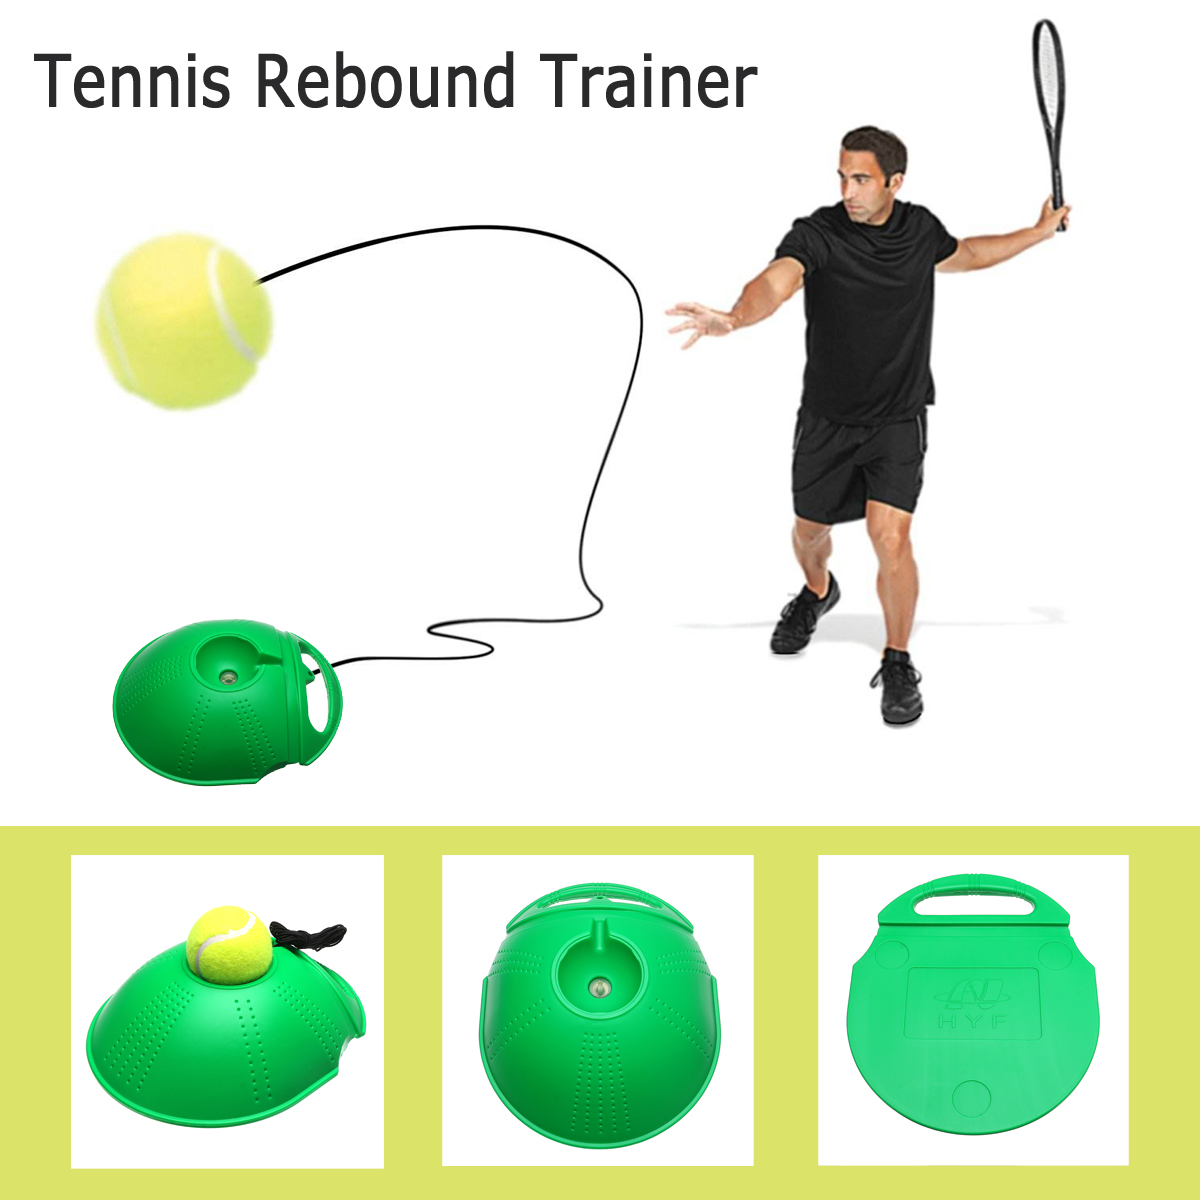 Tennis Training Tool Rebound Trainer Self-study Exercise Ball Baseboard Holder